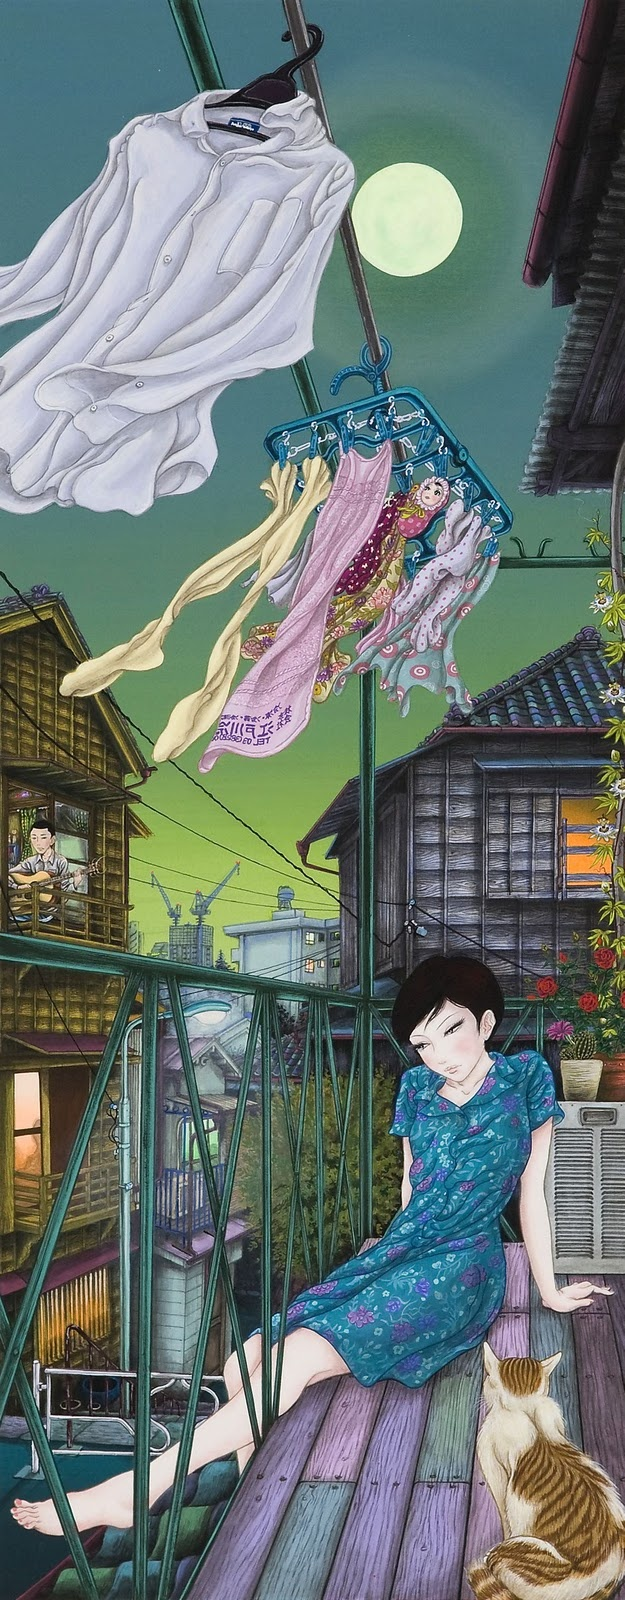 Yuji Moriguchi. This moves me but in opposite ways. Sad for the lonely girl or content with her time to dream. Leaning toward the latter.